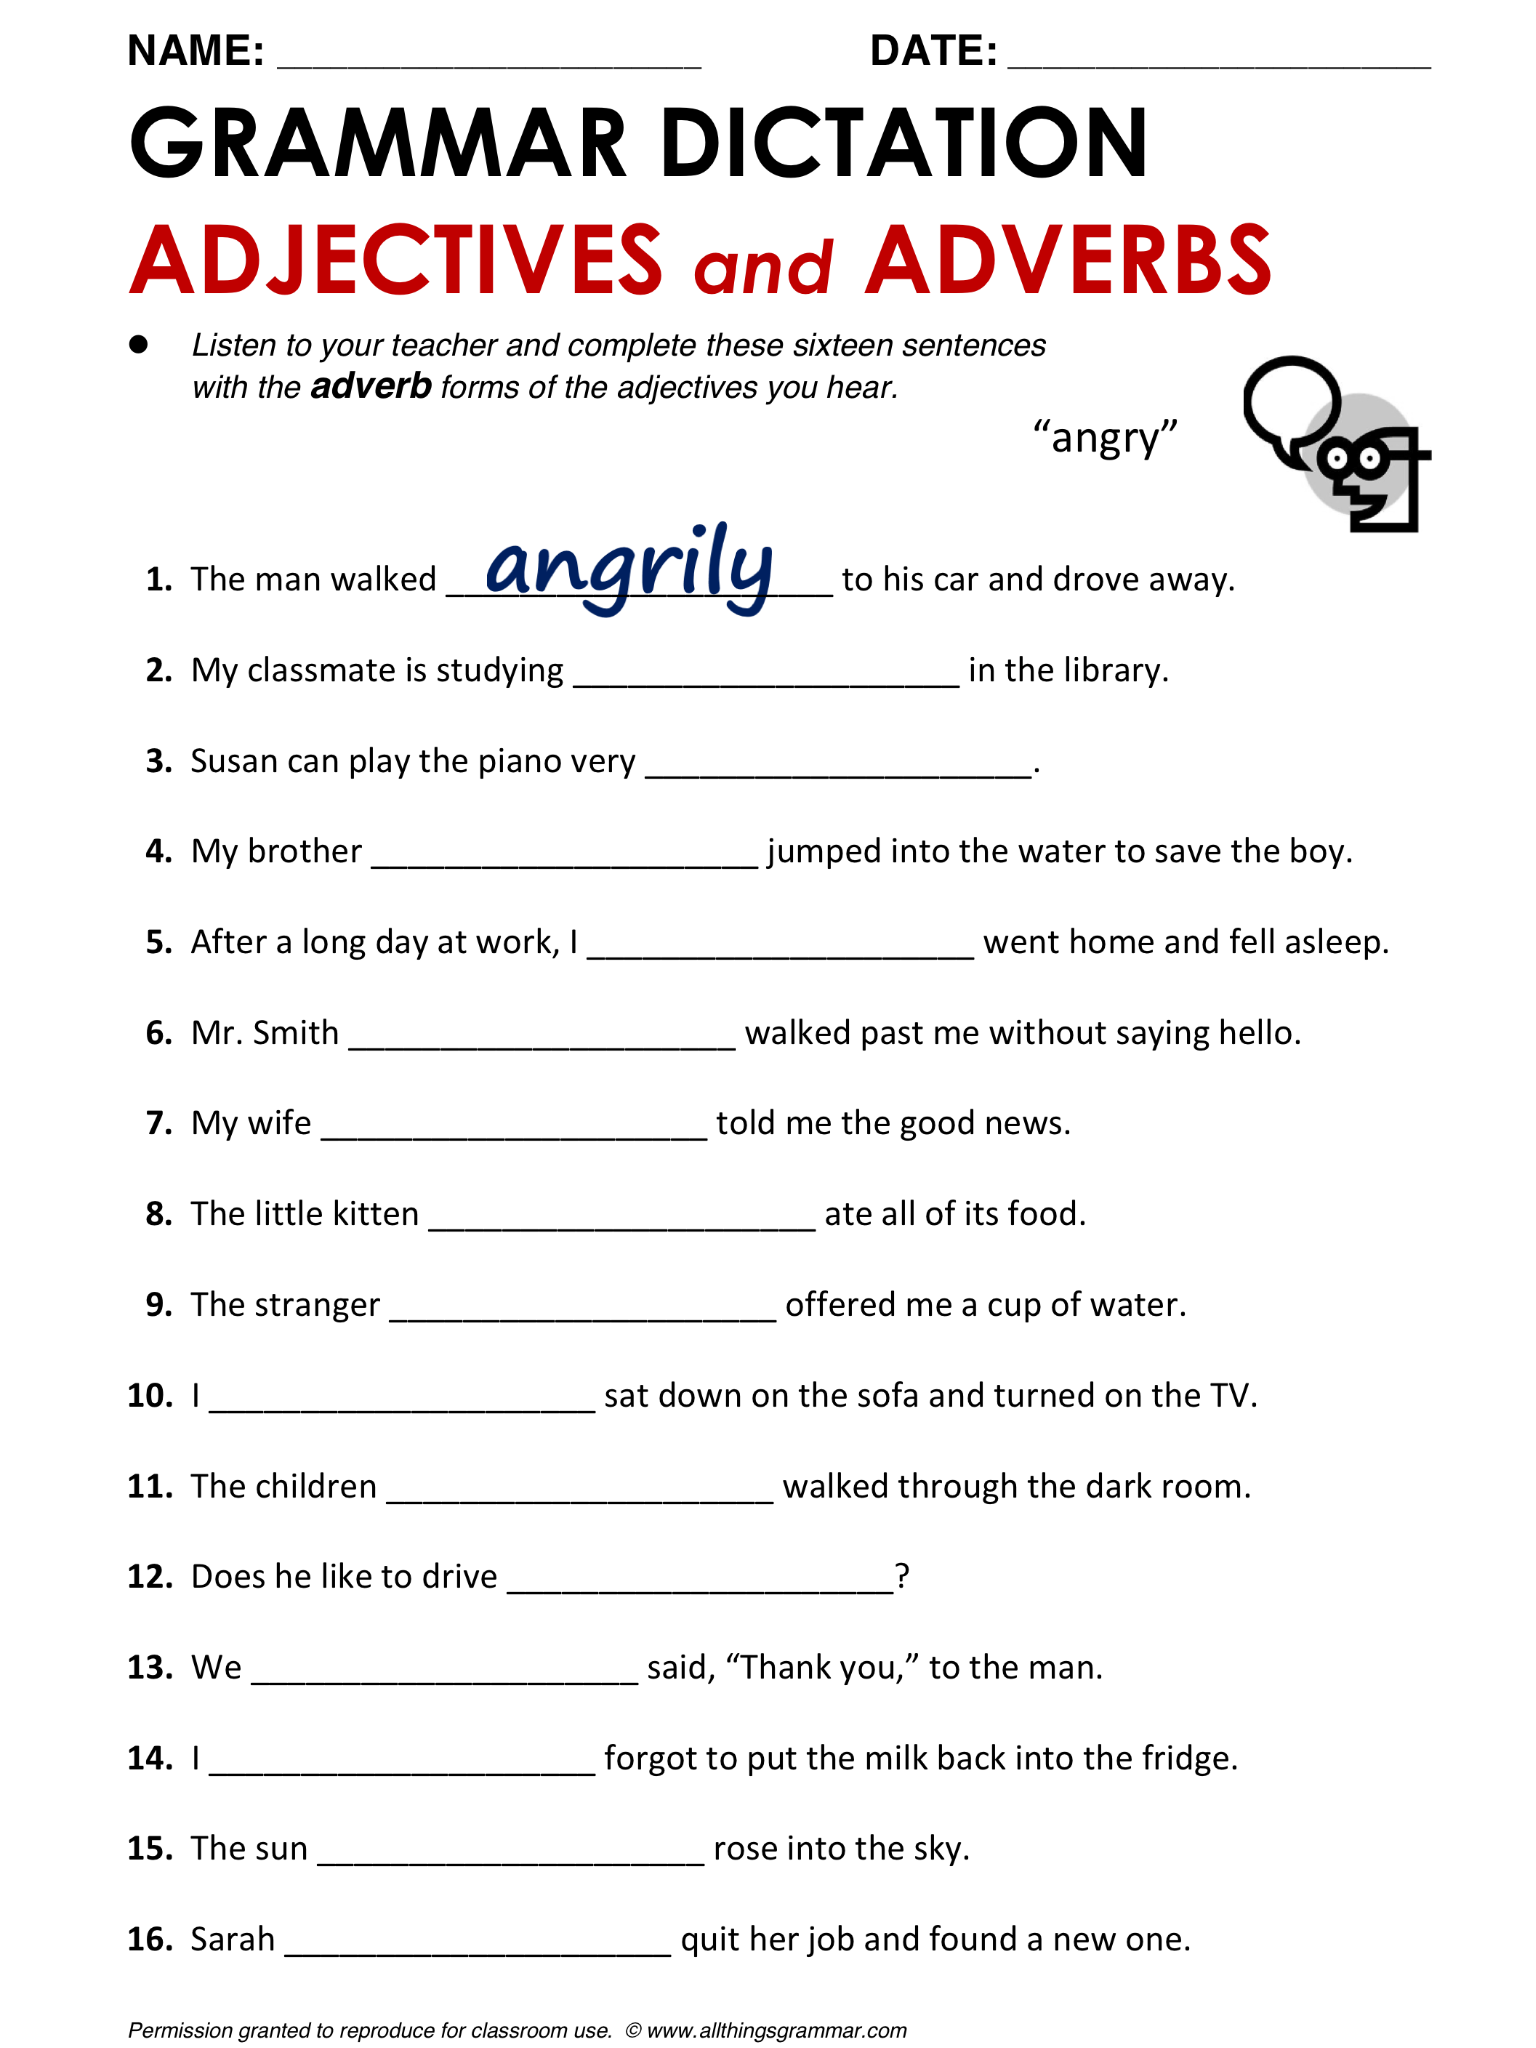 Worksheets Adverbs And Adjectives Worksheet pin by cleta hoffman on esl pinterest adverbs english grammar adjectives and